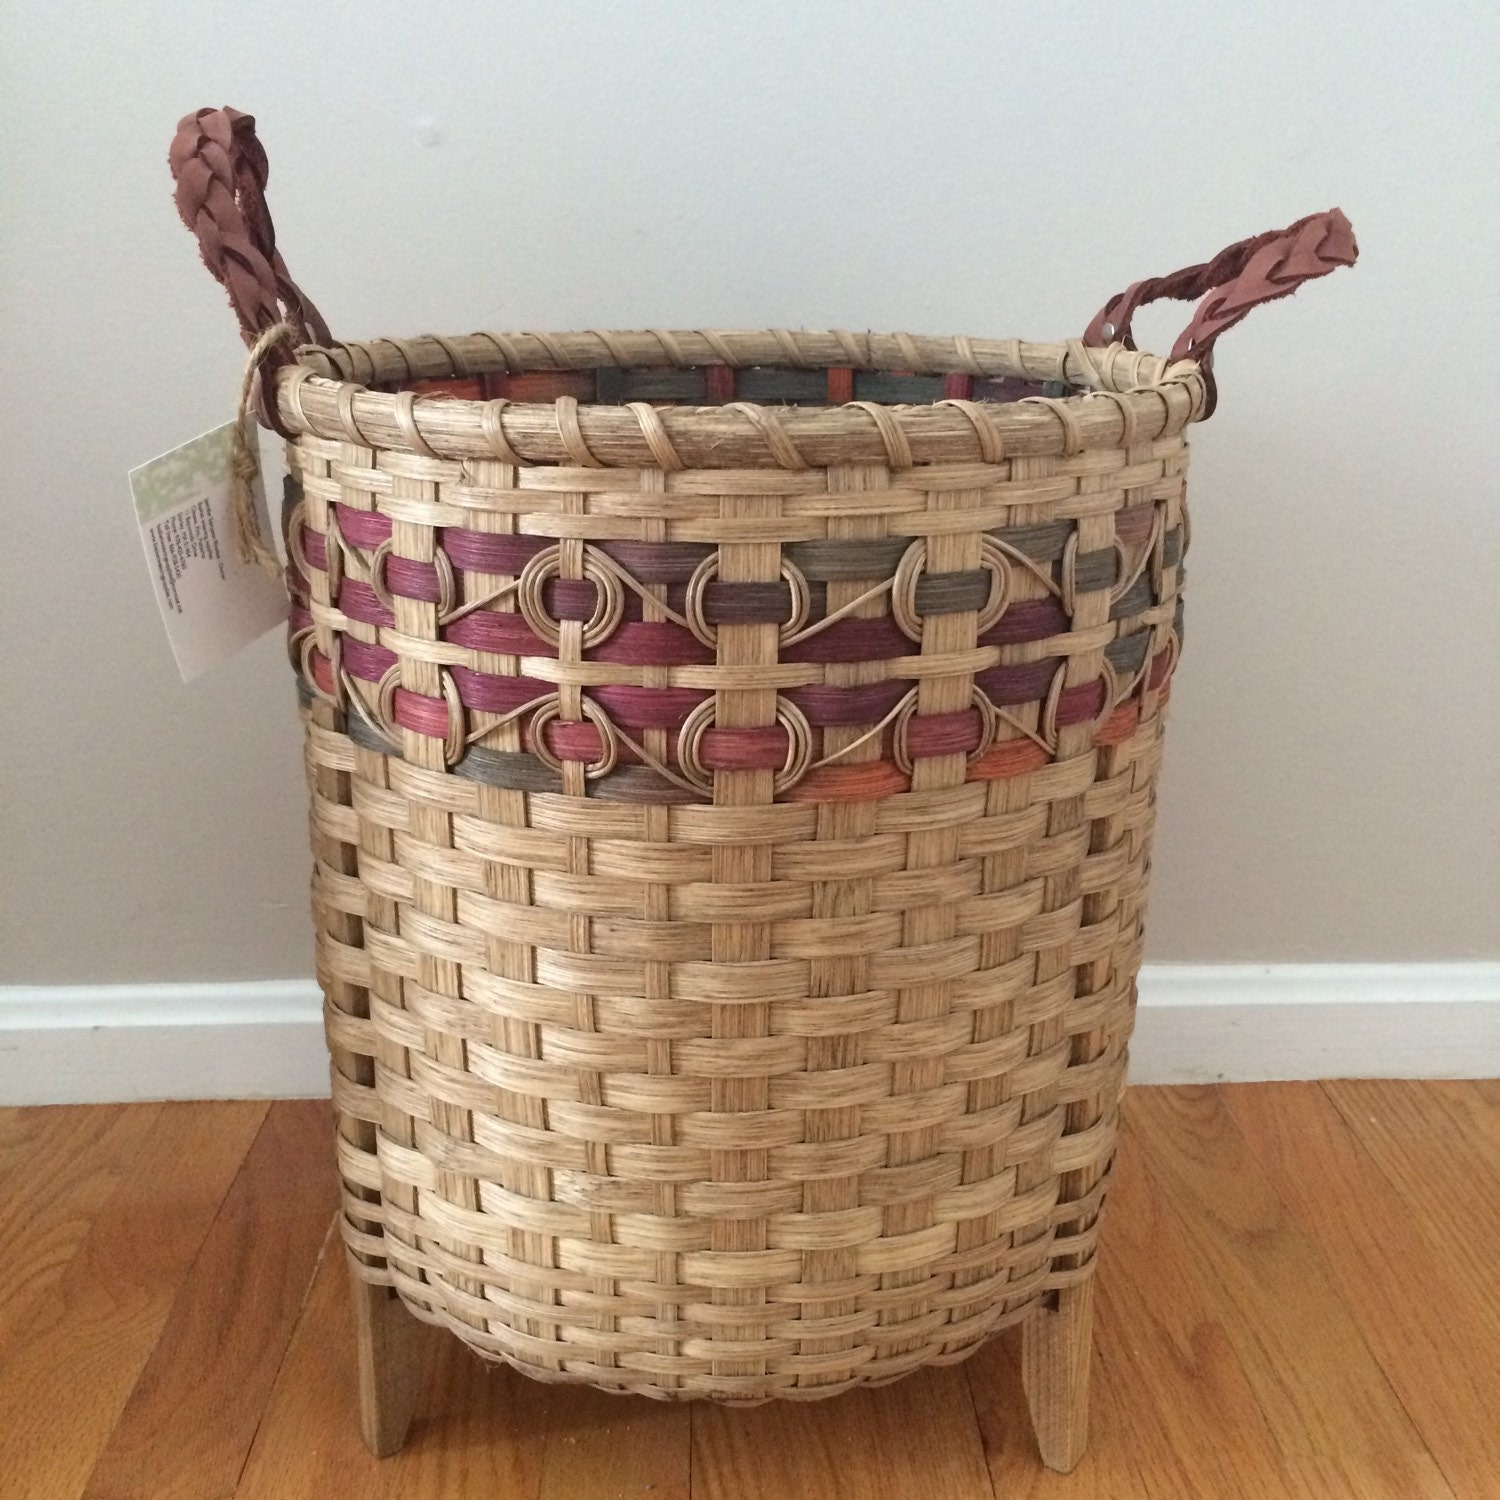 Knitting Basket Yarn : Yarn basket knitting crochet storage